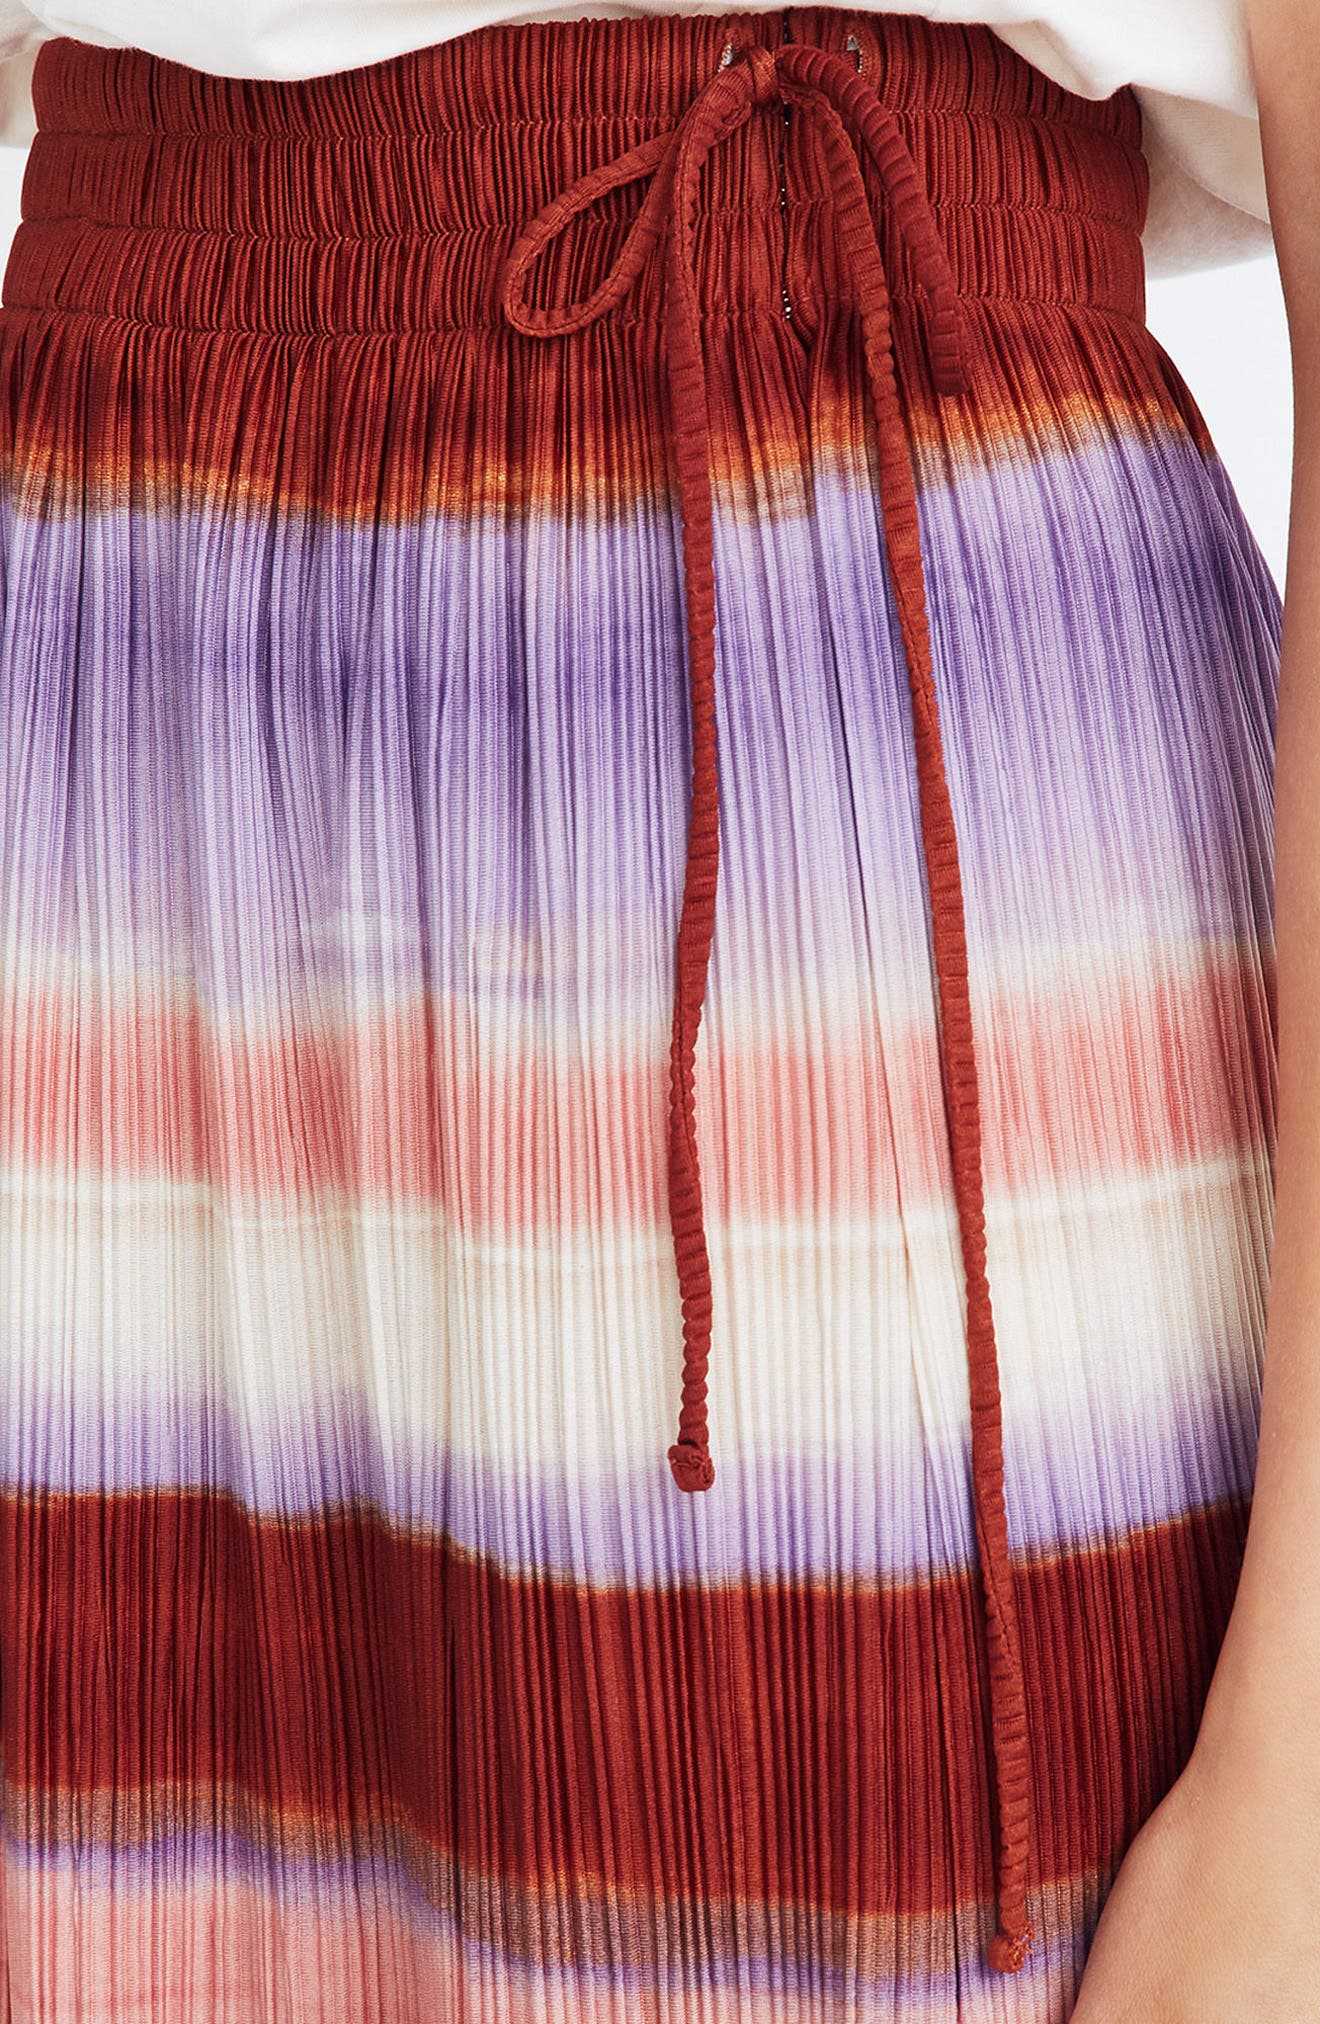 Texture & Thread Ombré Rainbow Micropleat Midi Skirt,                             Alternate thumbnail 3, color,                             CLEMENTINE CREAM